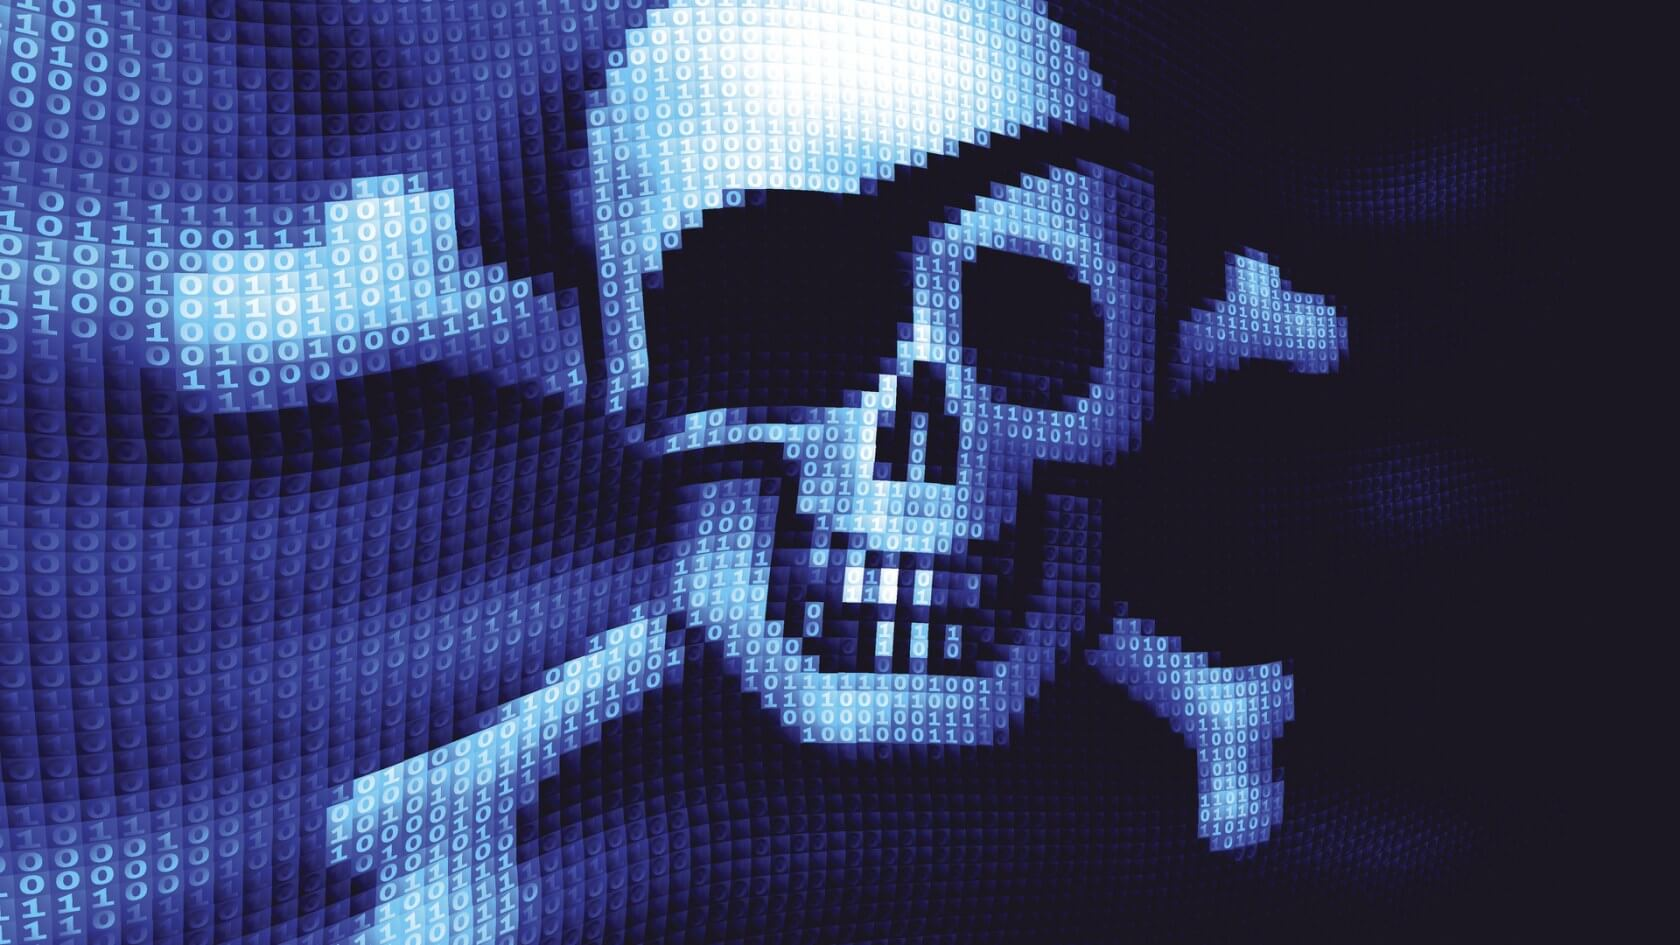 Game of Thrones piracy accounted for 17 percent of malware